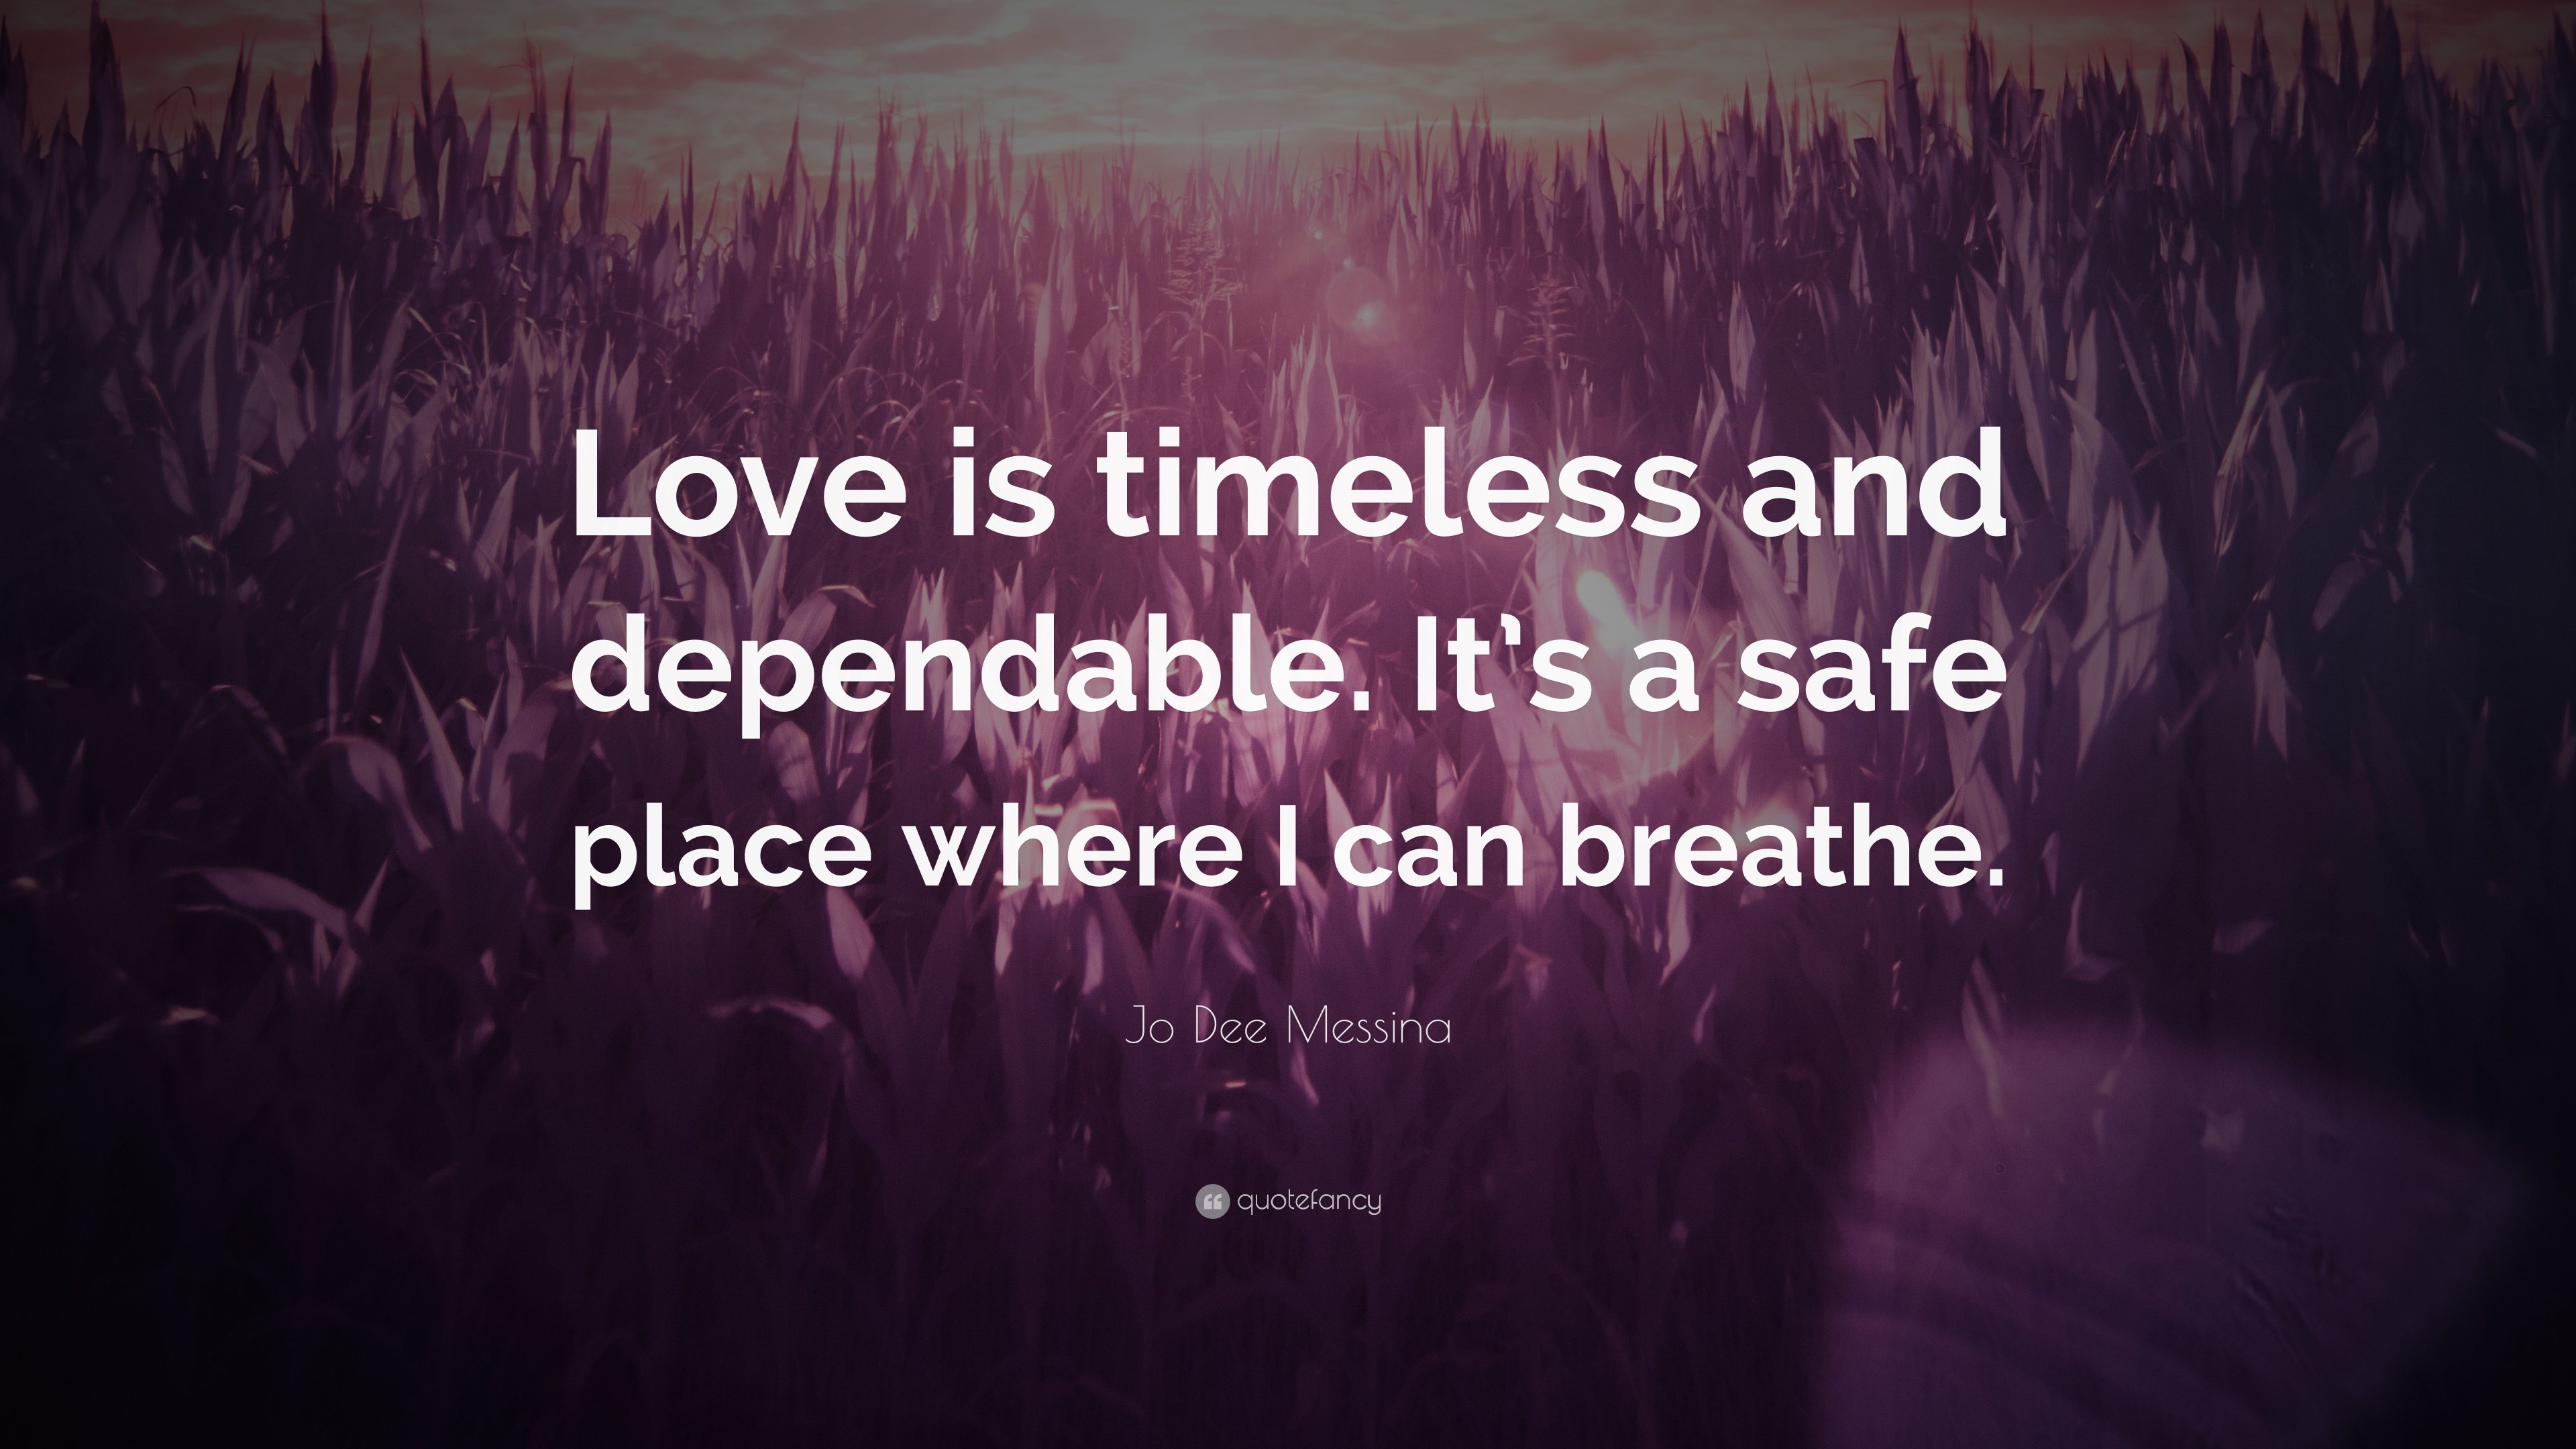 Timeless Love Quotes Jo Dee Messina Quotes 12 Wallpapers  Quotefancy